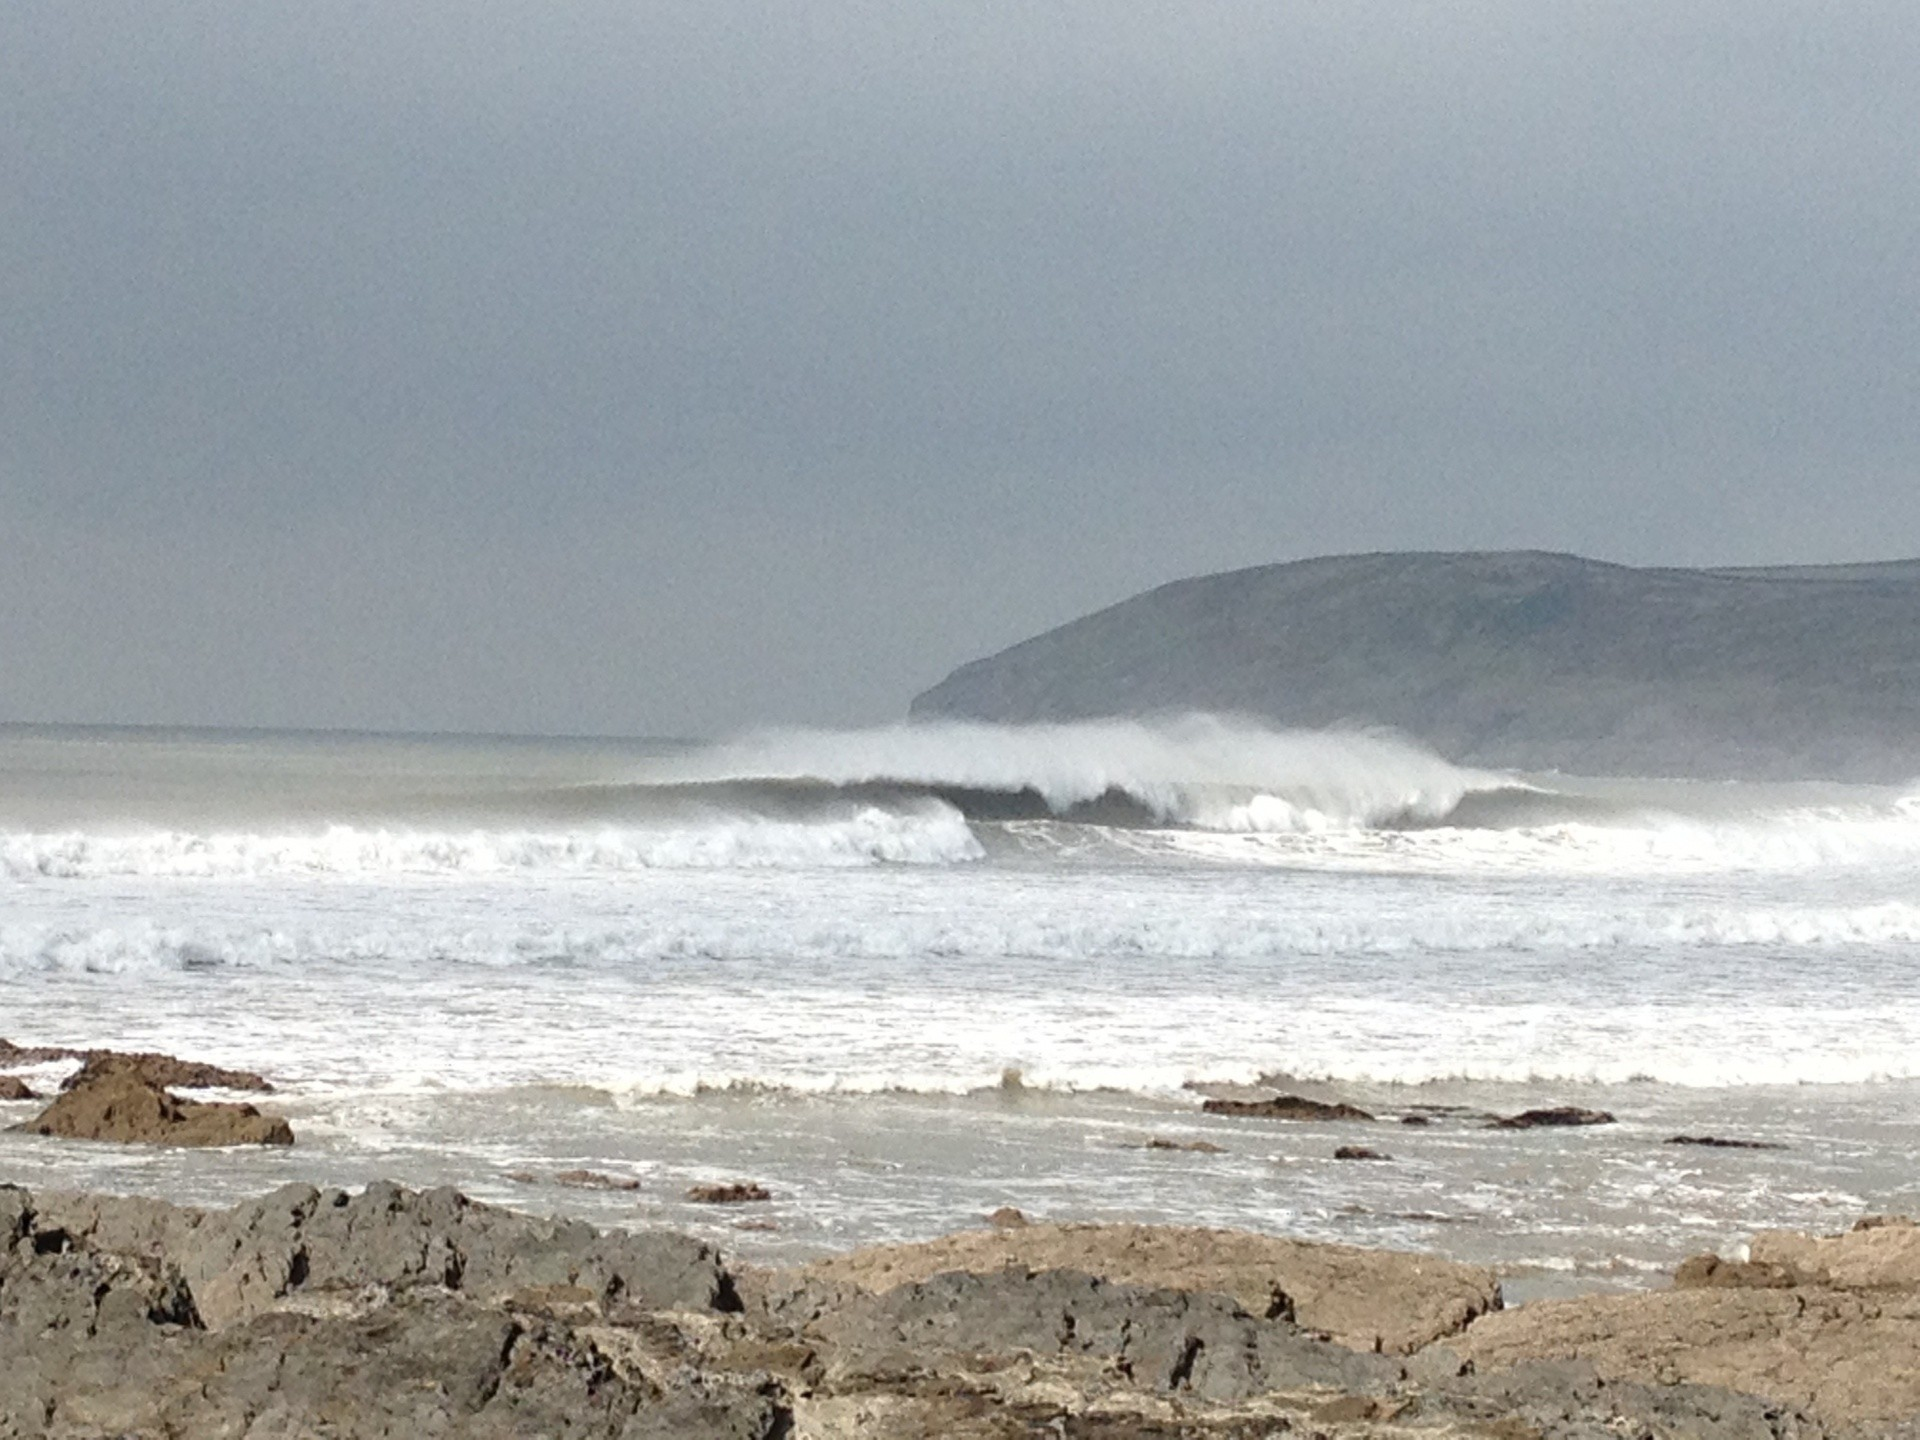 Sea Badger's photo of Croyde Beach